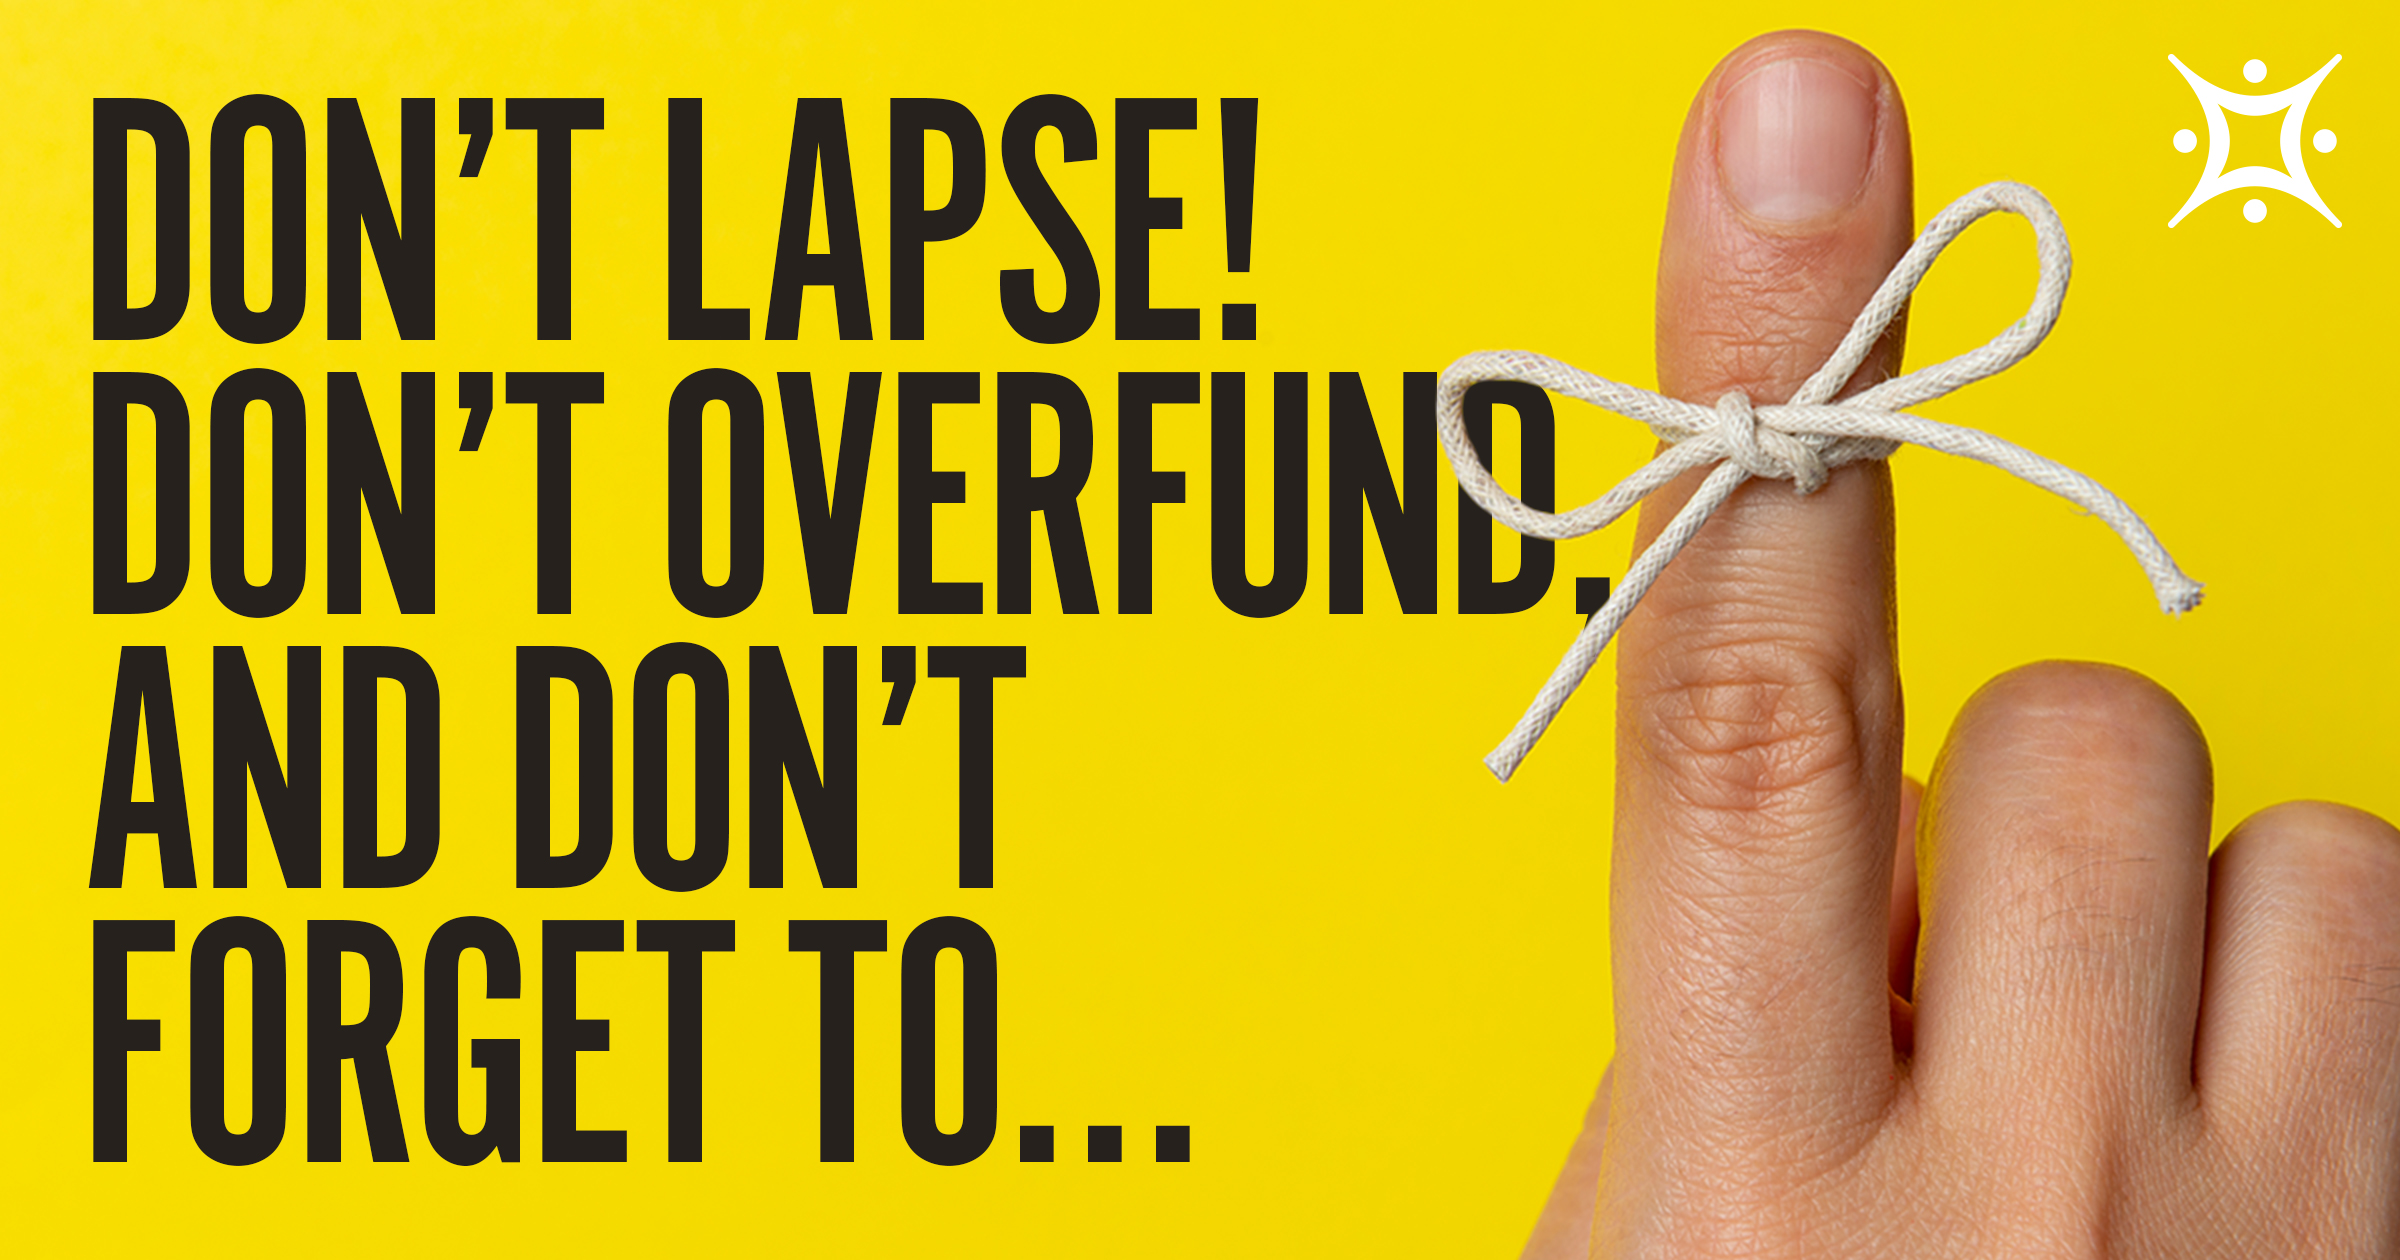 Year End Alert: Don't Lapse! Don't Overfund, & Don't Forget to…